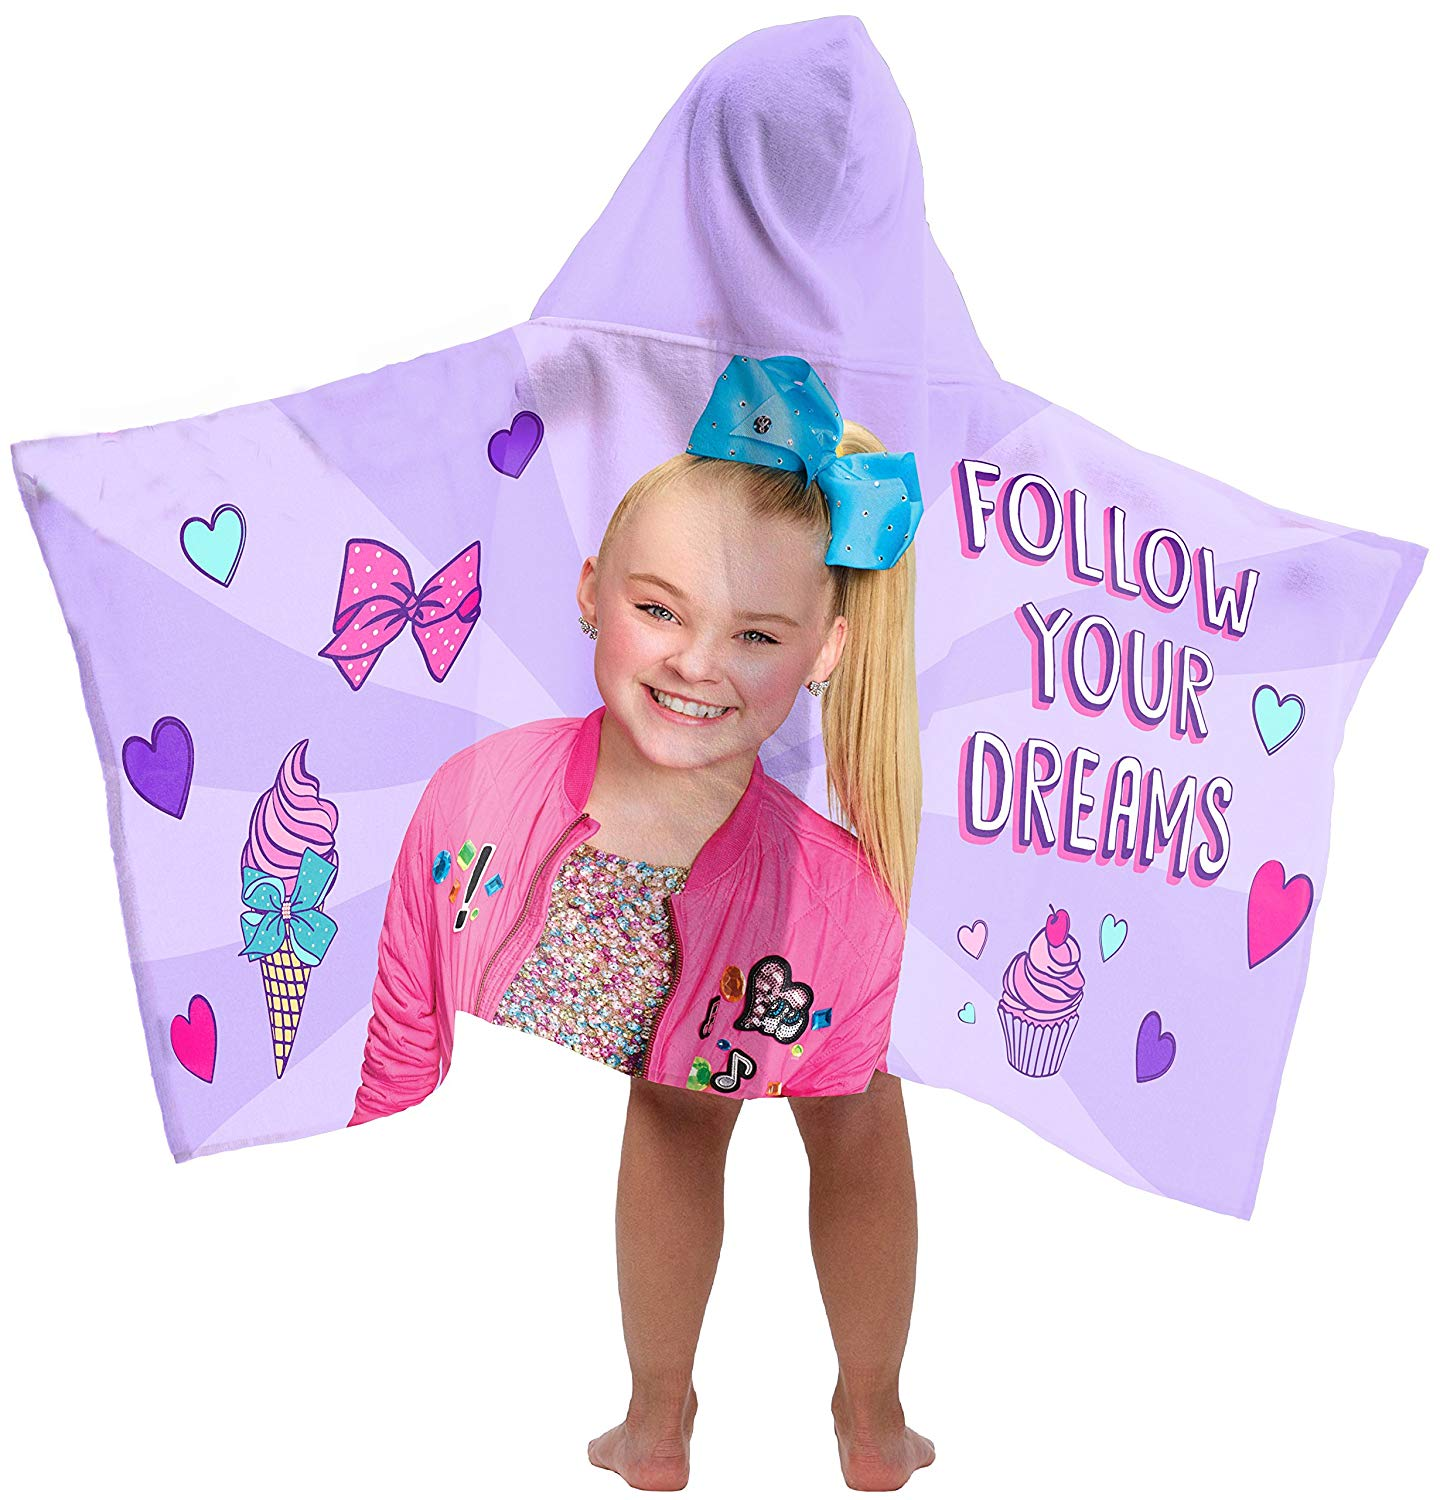 "Nickelodeon JoJo Siwa Follow Your Dreams Super Soft & Absorbent Kids Hooded Bath/Pool/Beach Towel- Fade Resistant Cotton Terry Towel, 22.5"" Inch x 51"" Inch (Official Nickelodeon Product)"